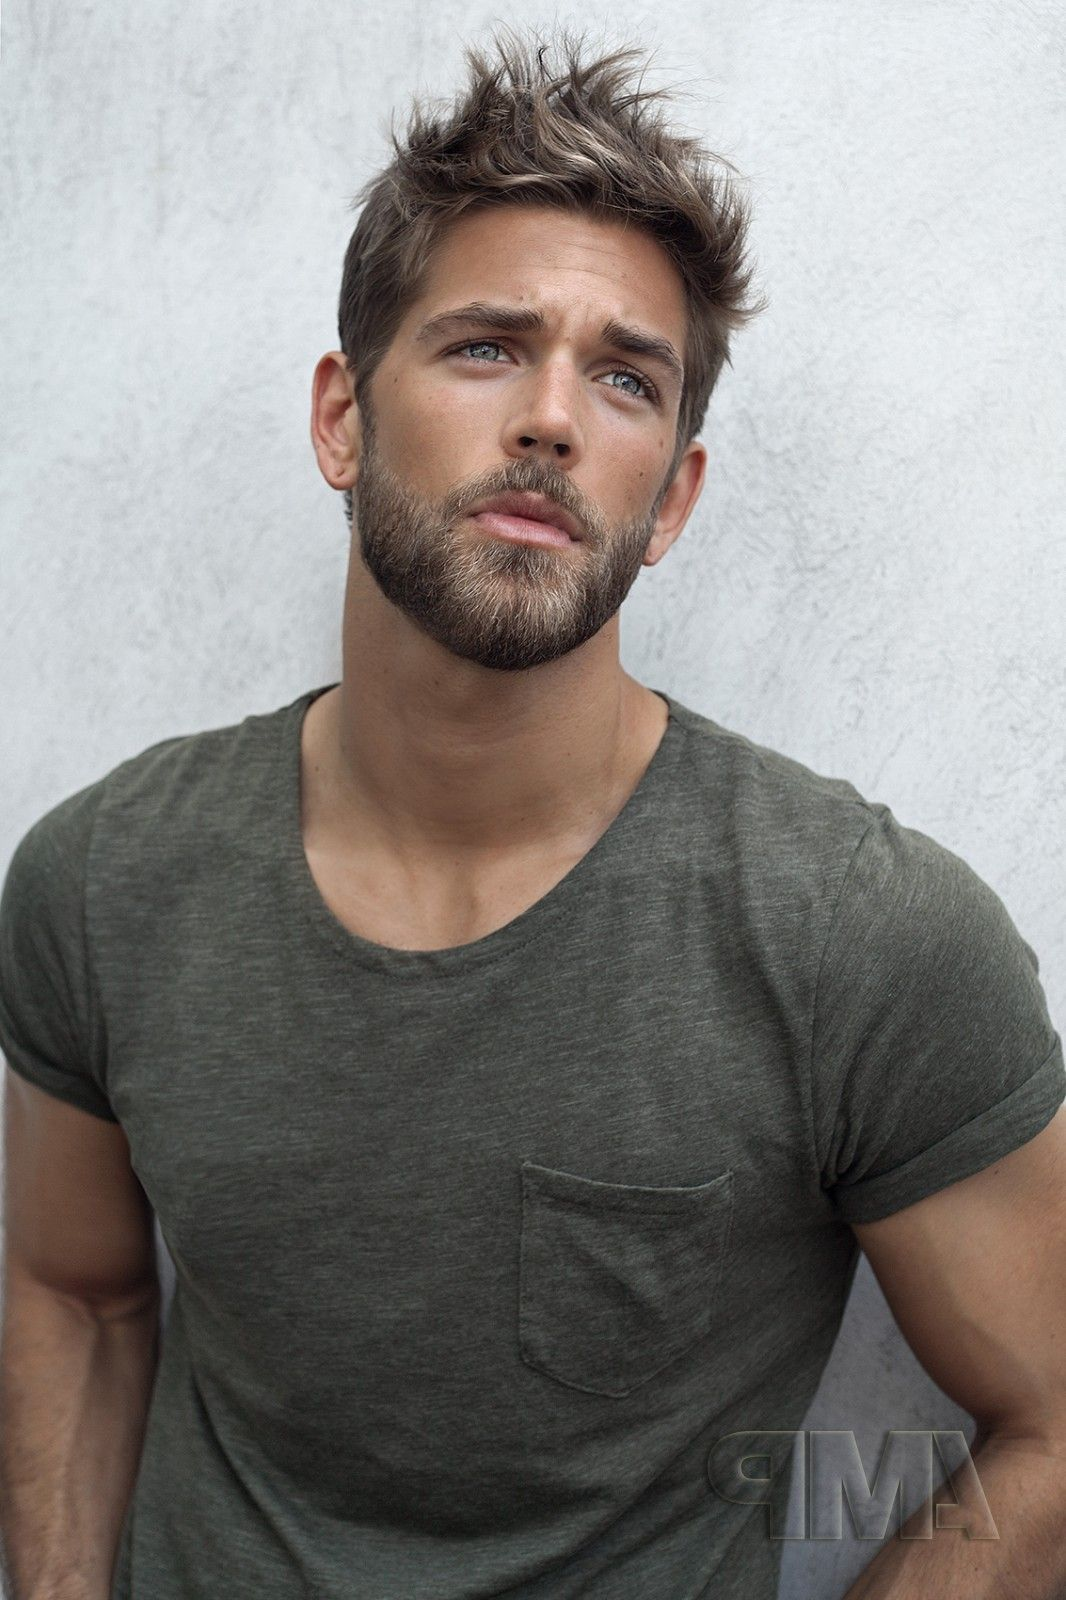 Bed Head Hairstyle Men  styles  Pinterest  Handsome Perfect man